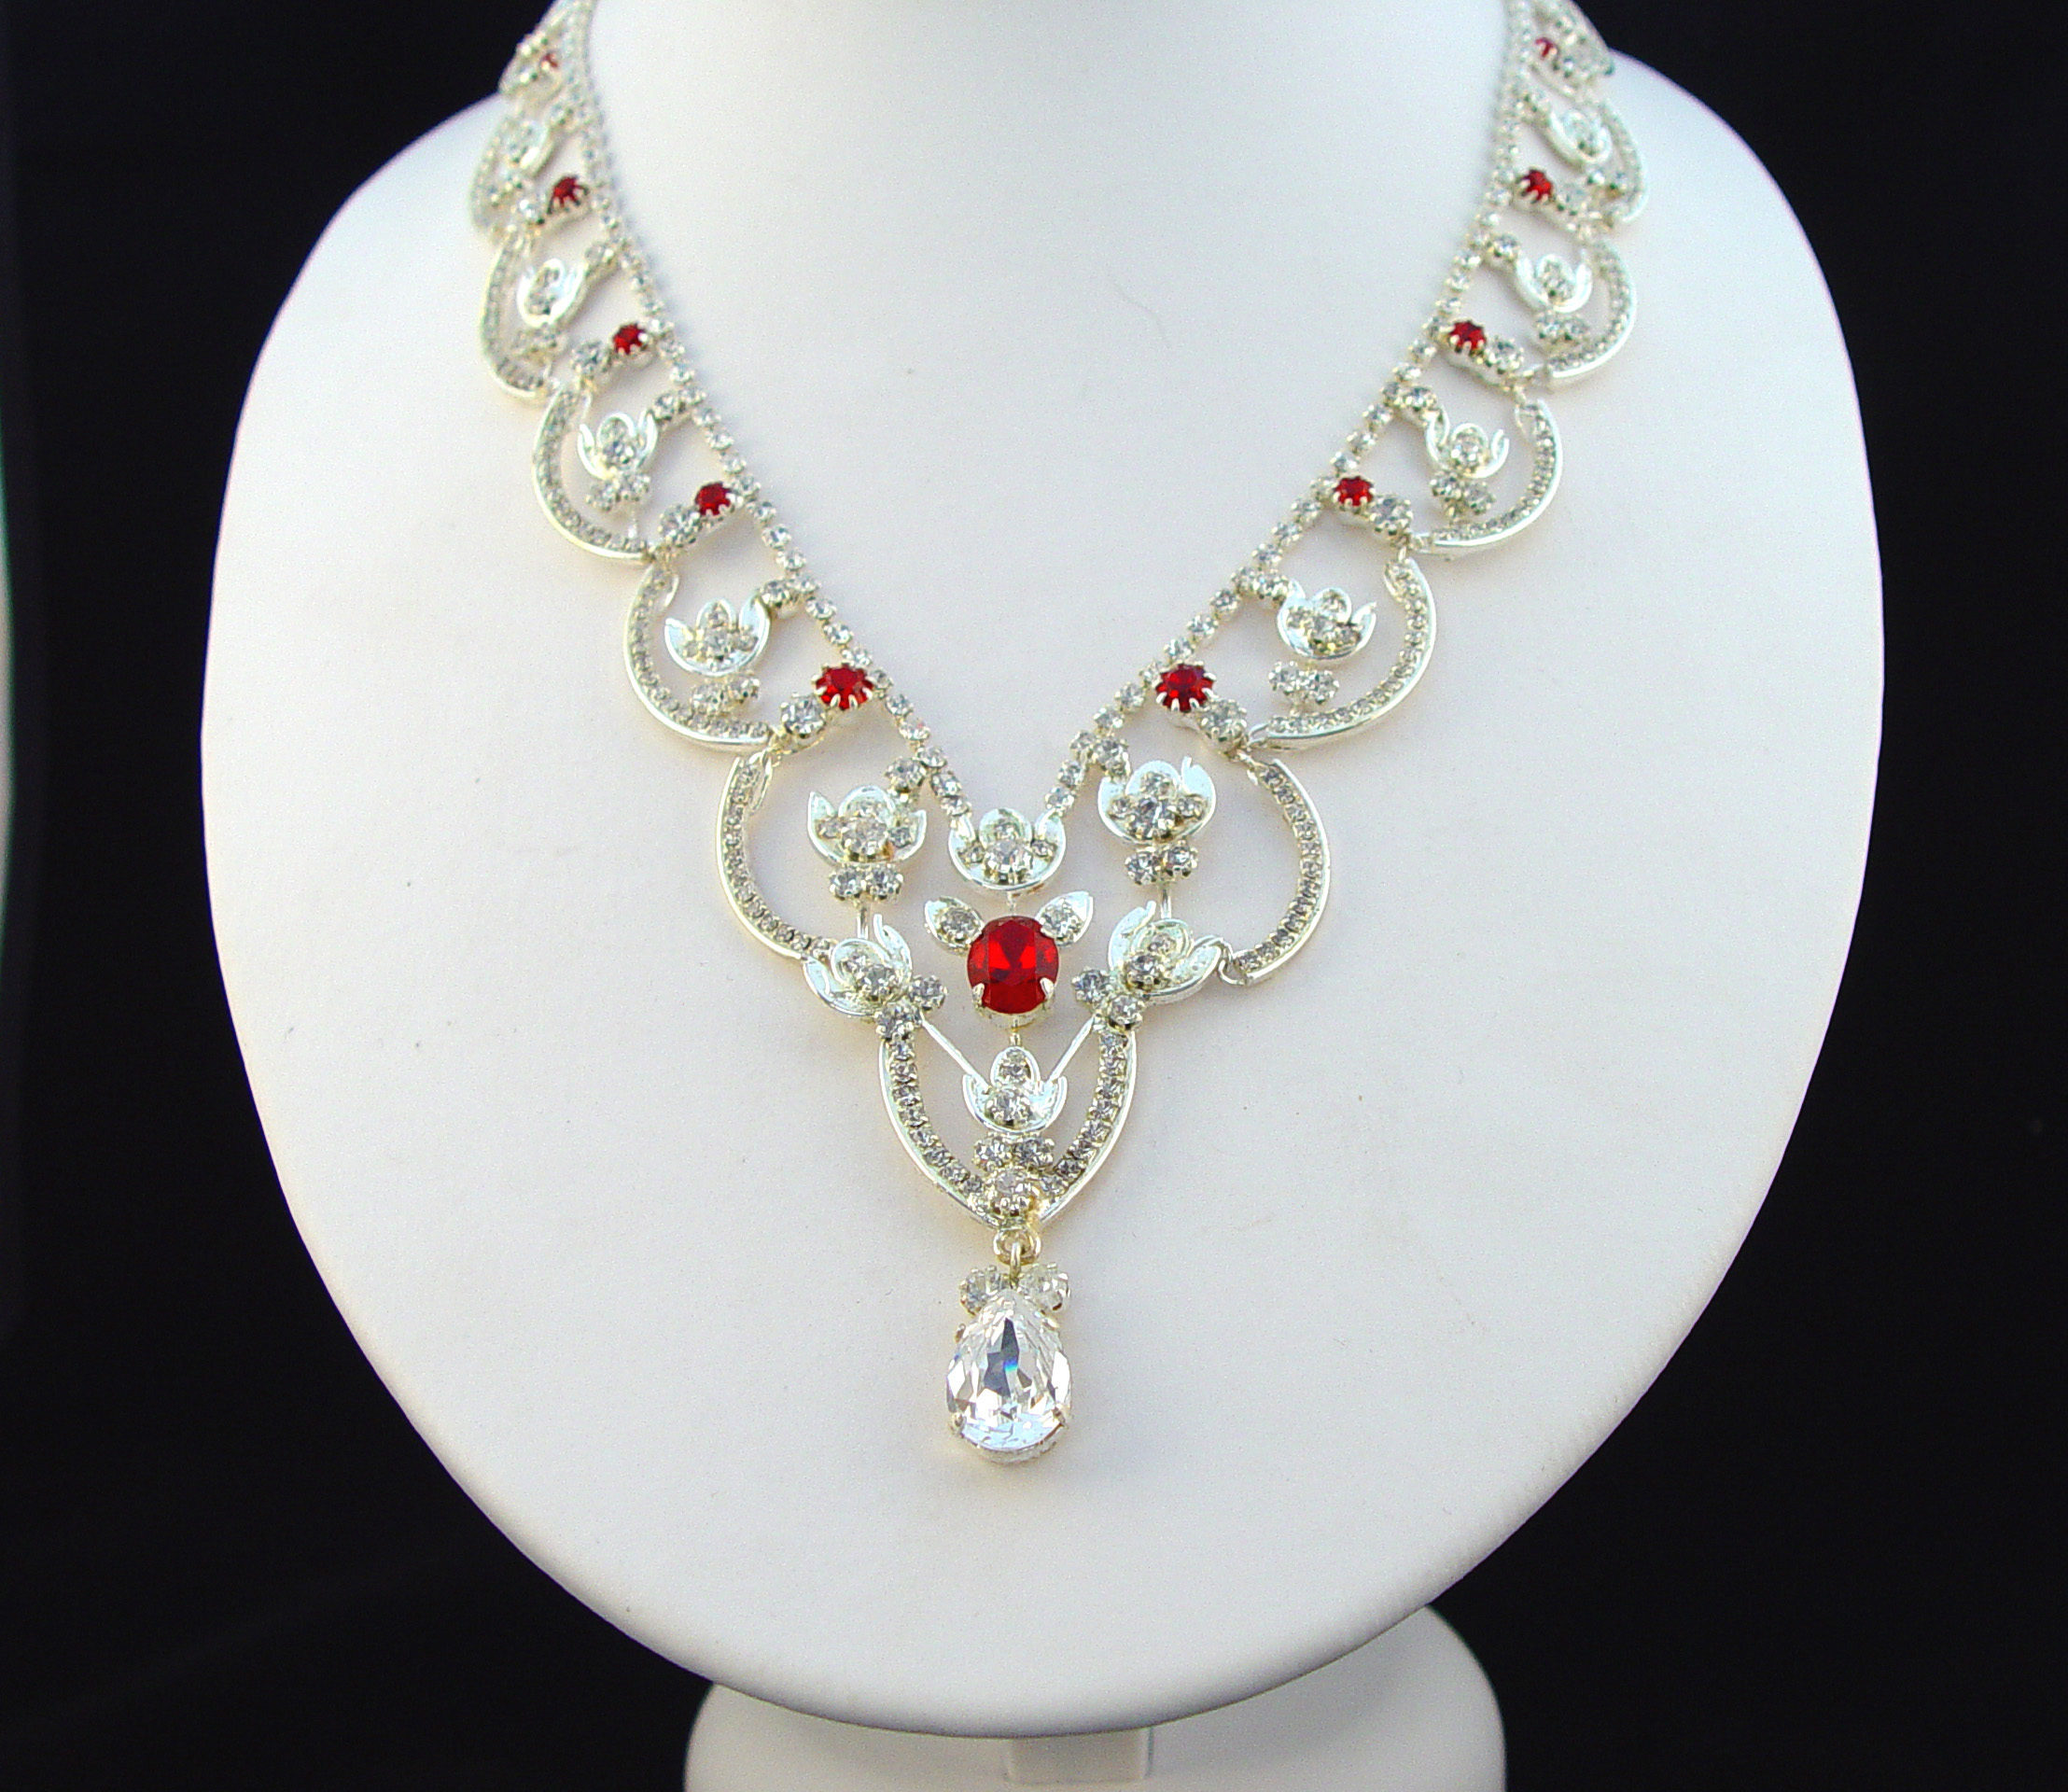 Her Majesty The Queen Elizabeth S Two Strand Necklaces